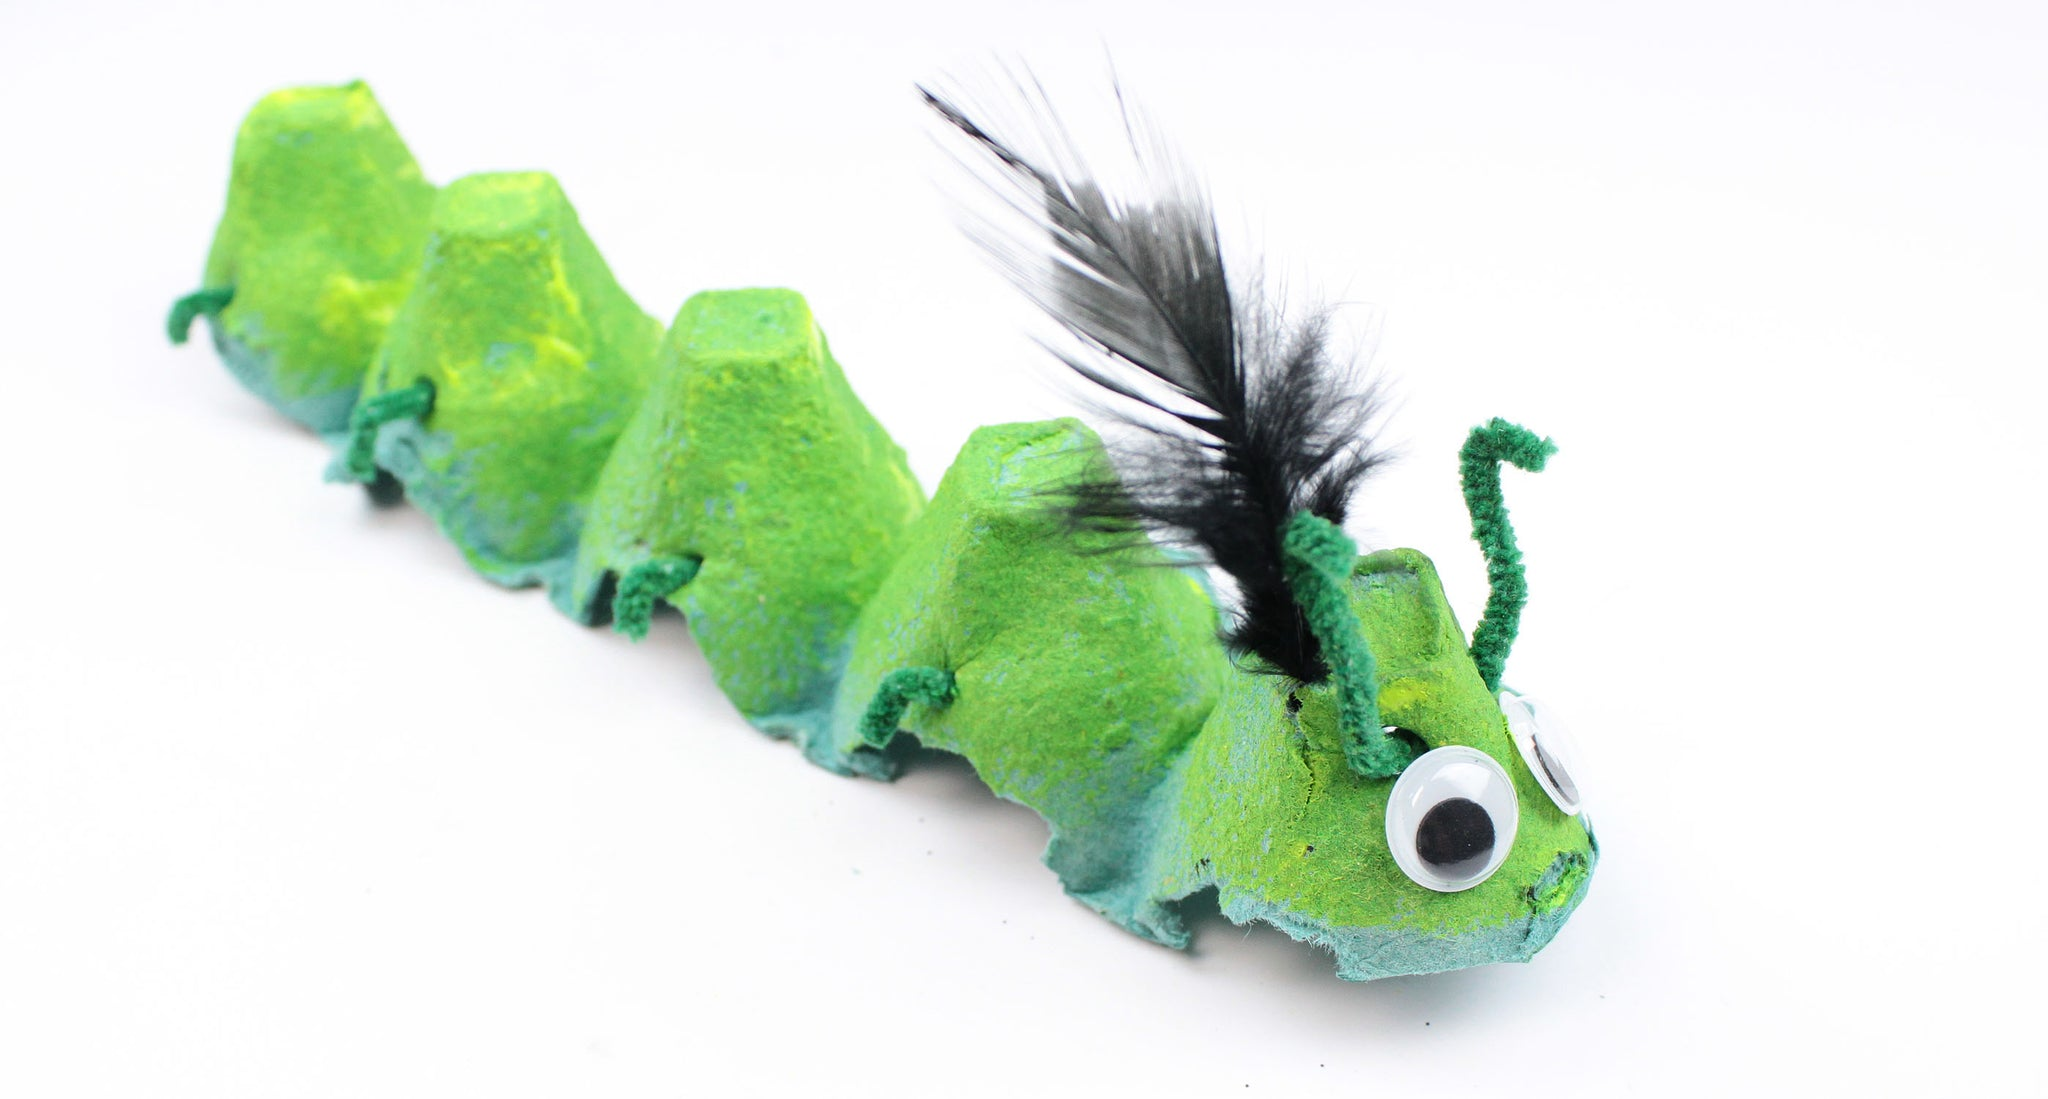 DIY egg carton caterpillar